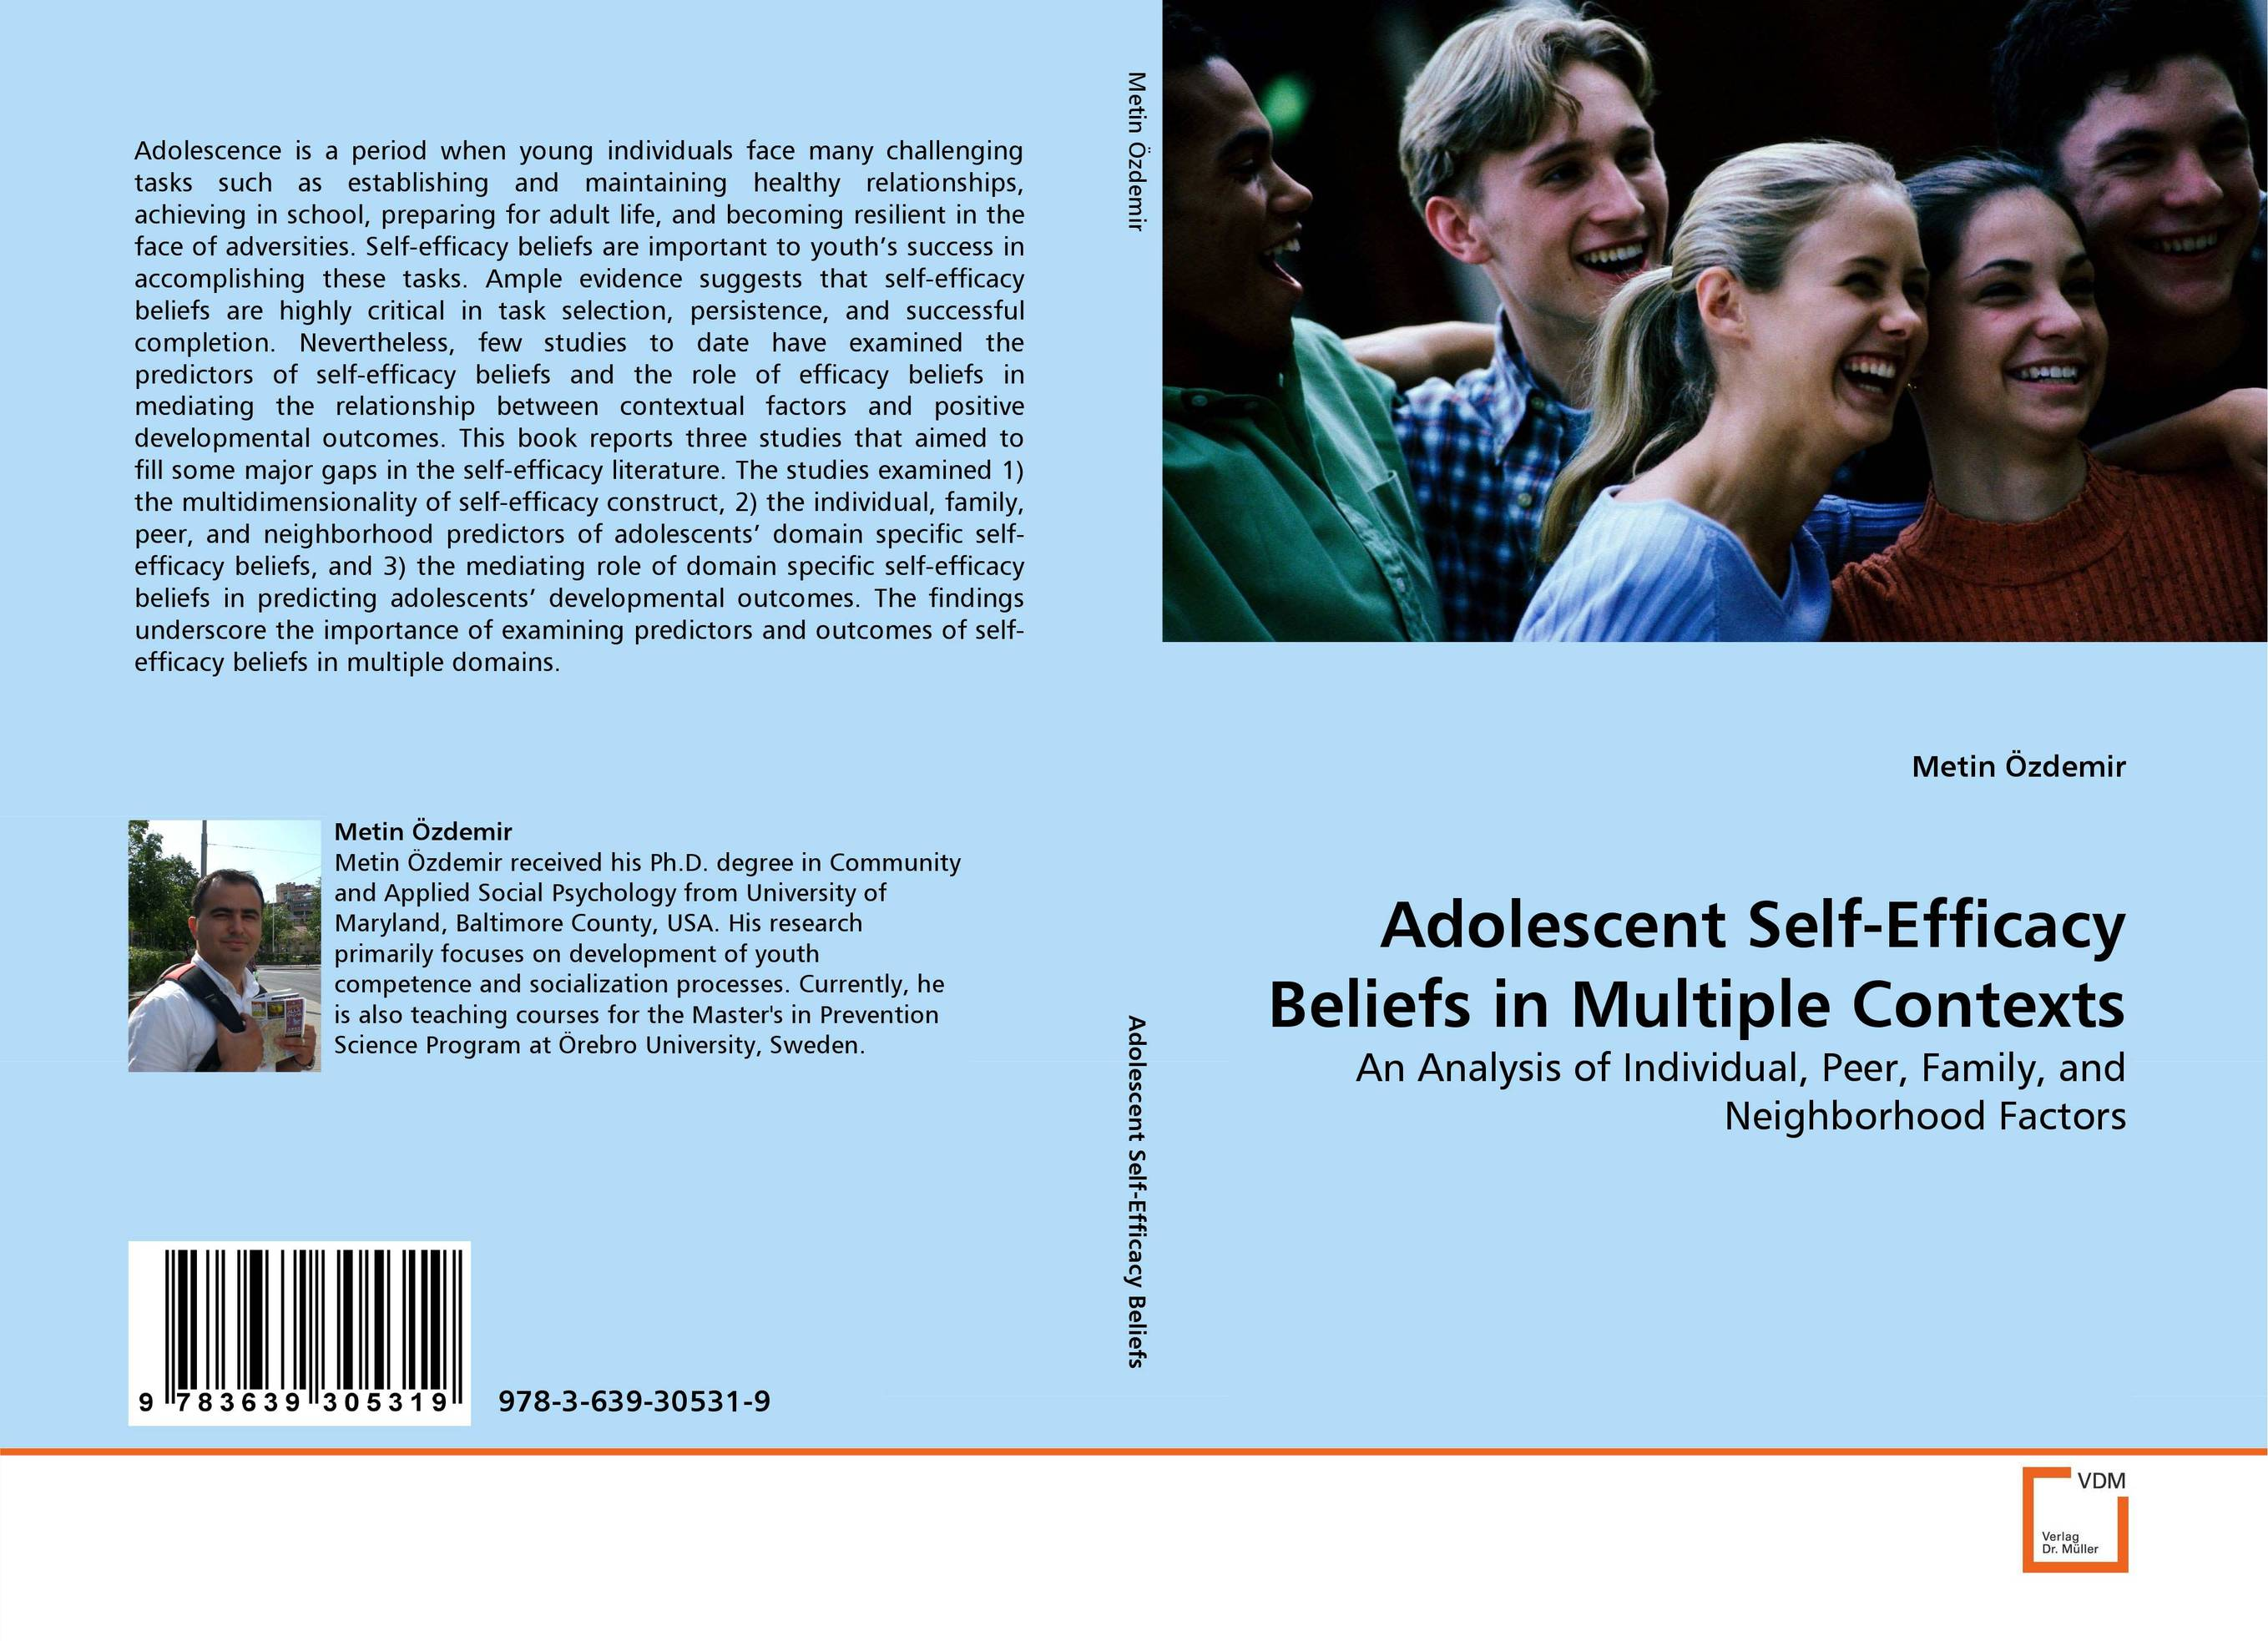 an analysis of the differences in beliefs among individuals can turn anyone into an ideal critic Homelessness: causes, culture and community development | 9 behavior and cultural habits unique to the homeless community are acquired, making it increasingly difficult to reestablish themselves into mainstream society where the norms and.